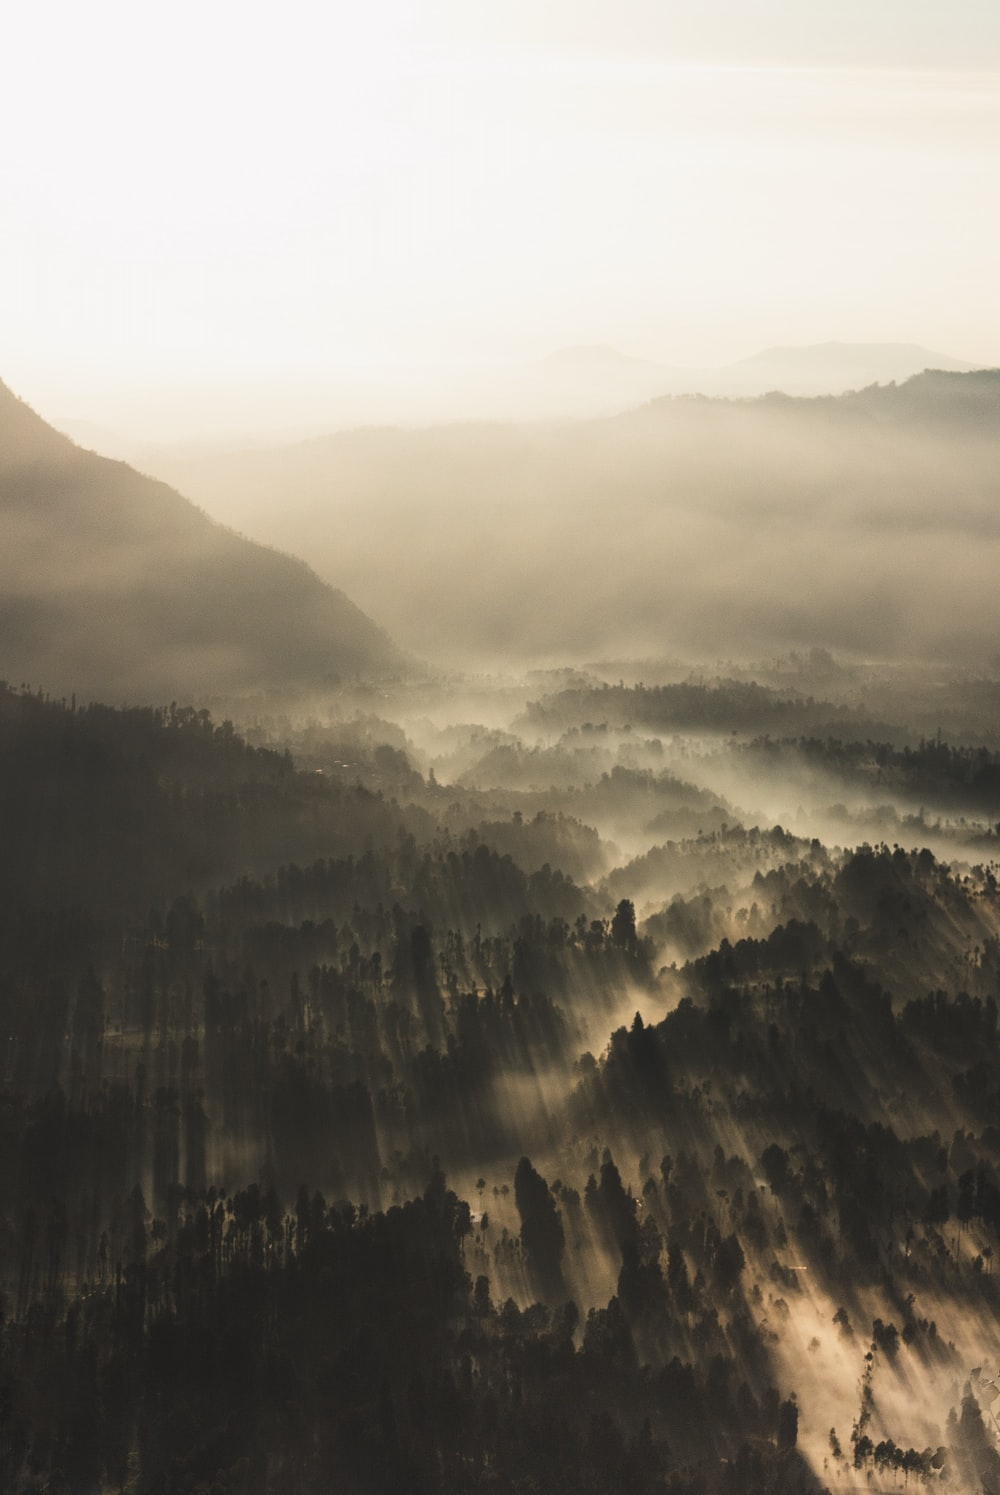 forest surrounded by fogs during daytime